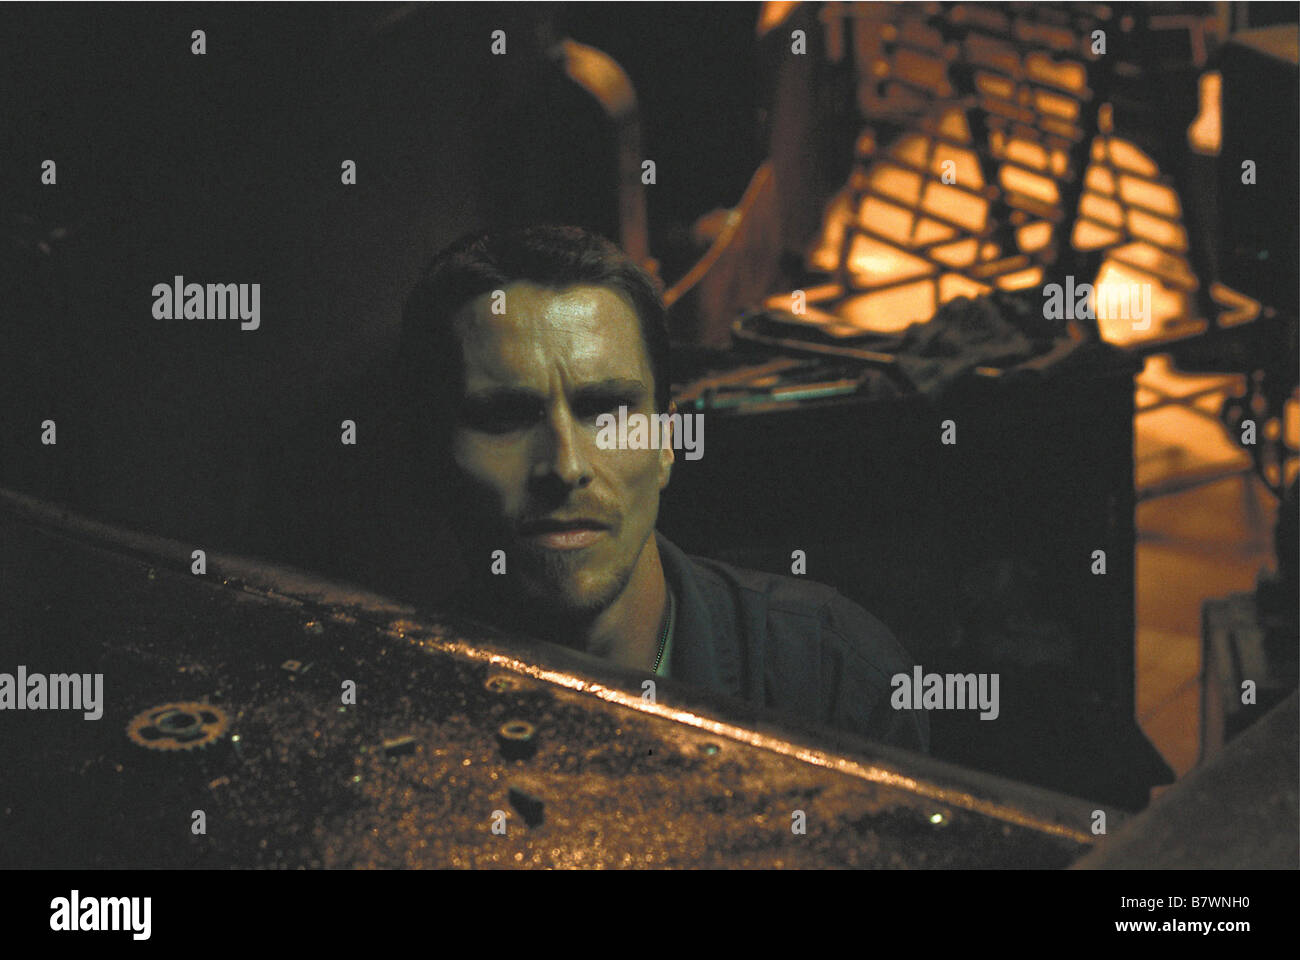 El Maquinista The Machinist Year: 2004 Spain Director: Brad Anderson Christian Bale - Stock Image